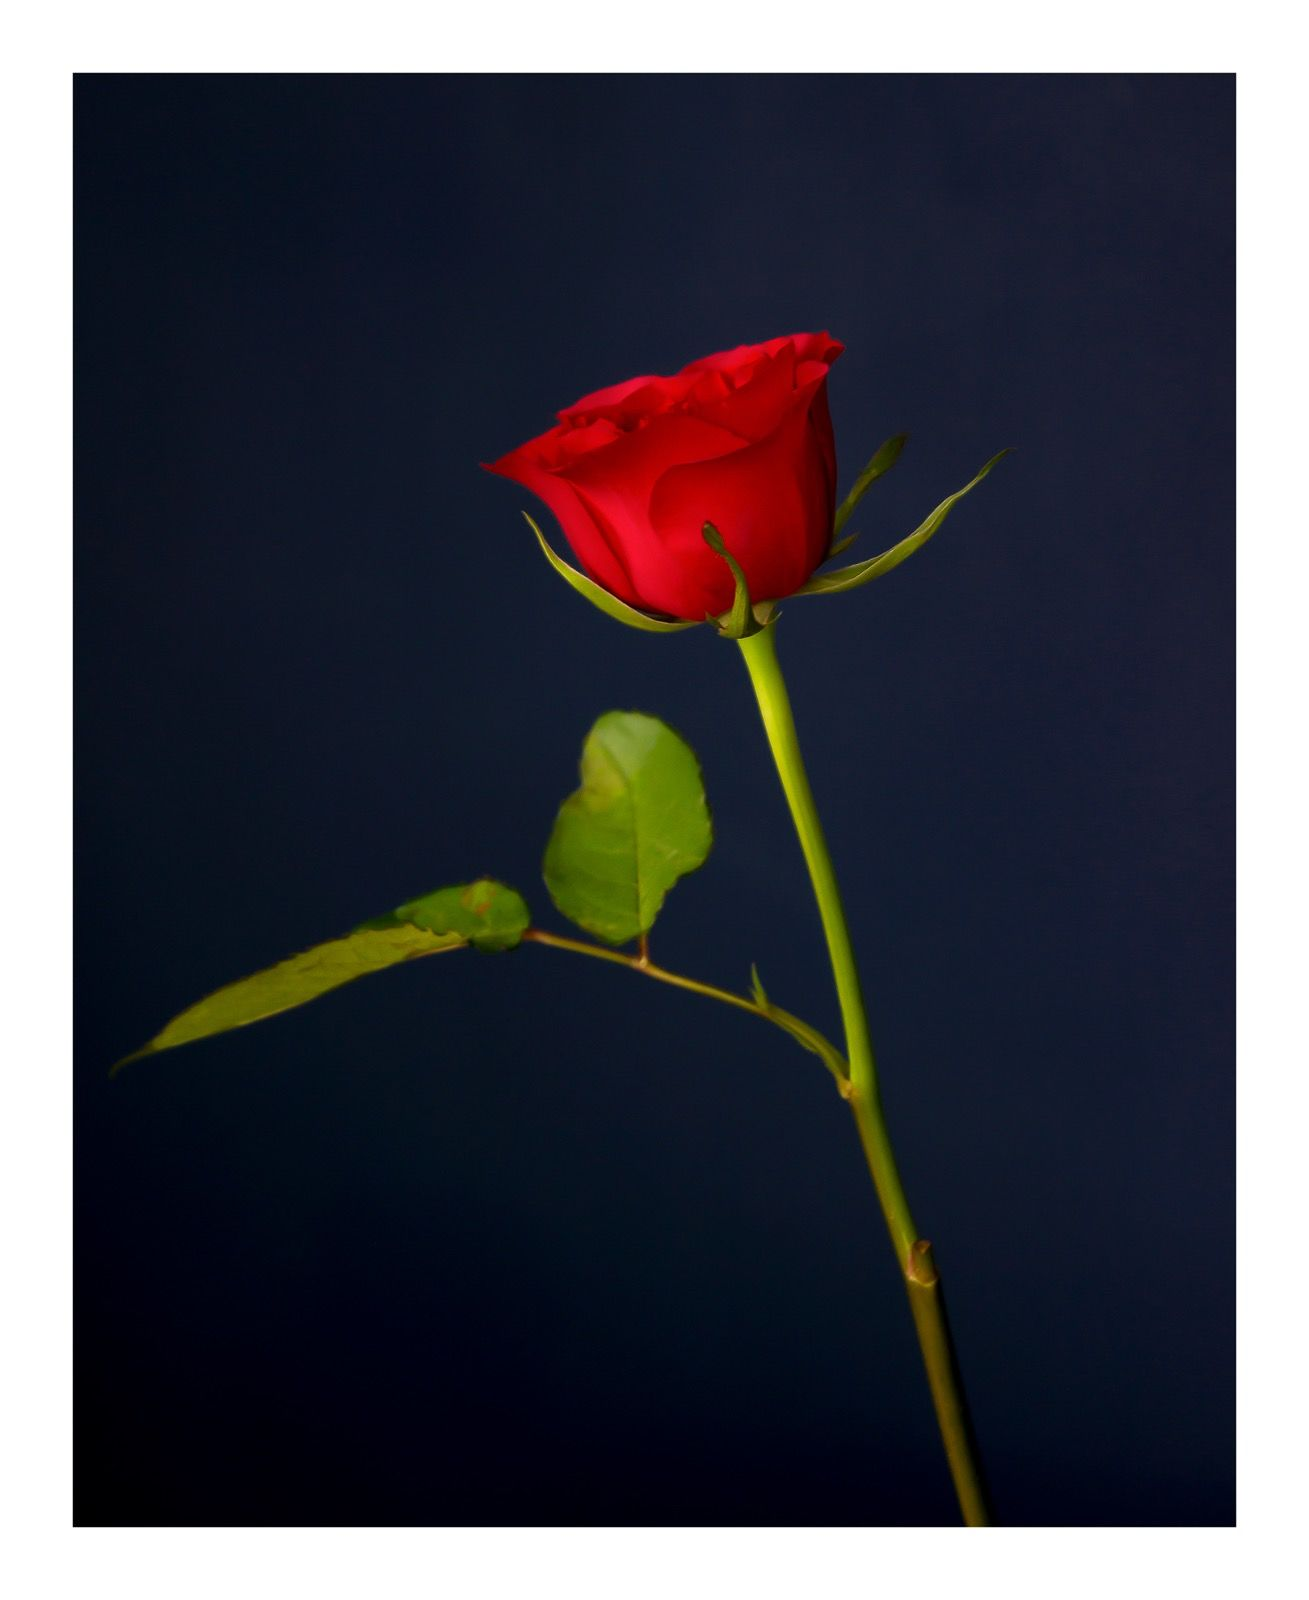 Going Over: Red Rose